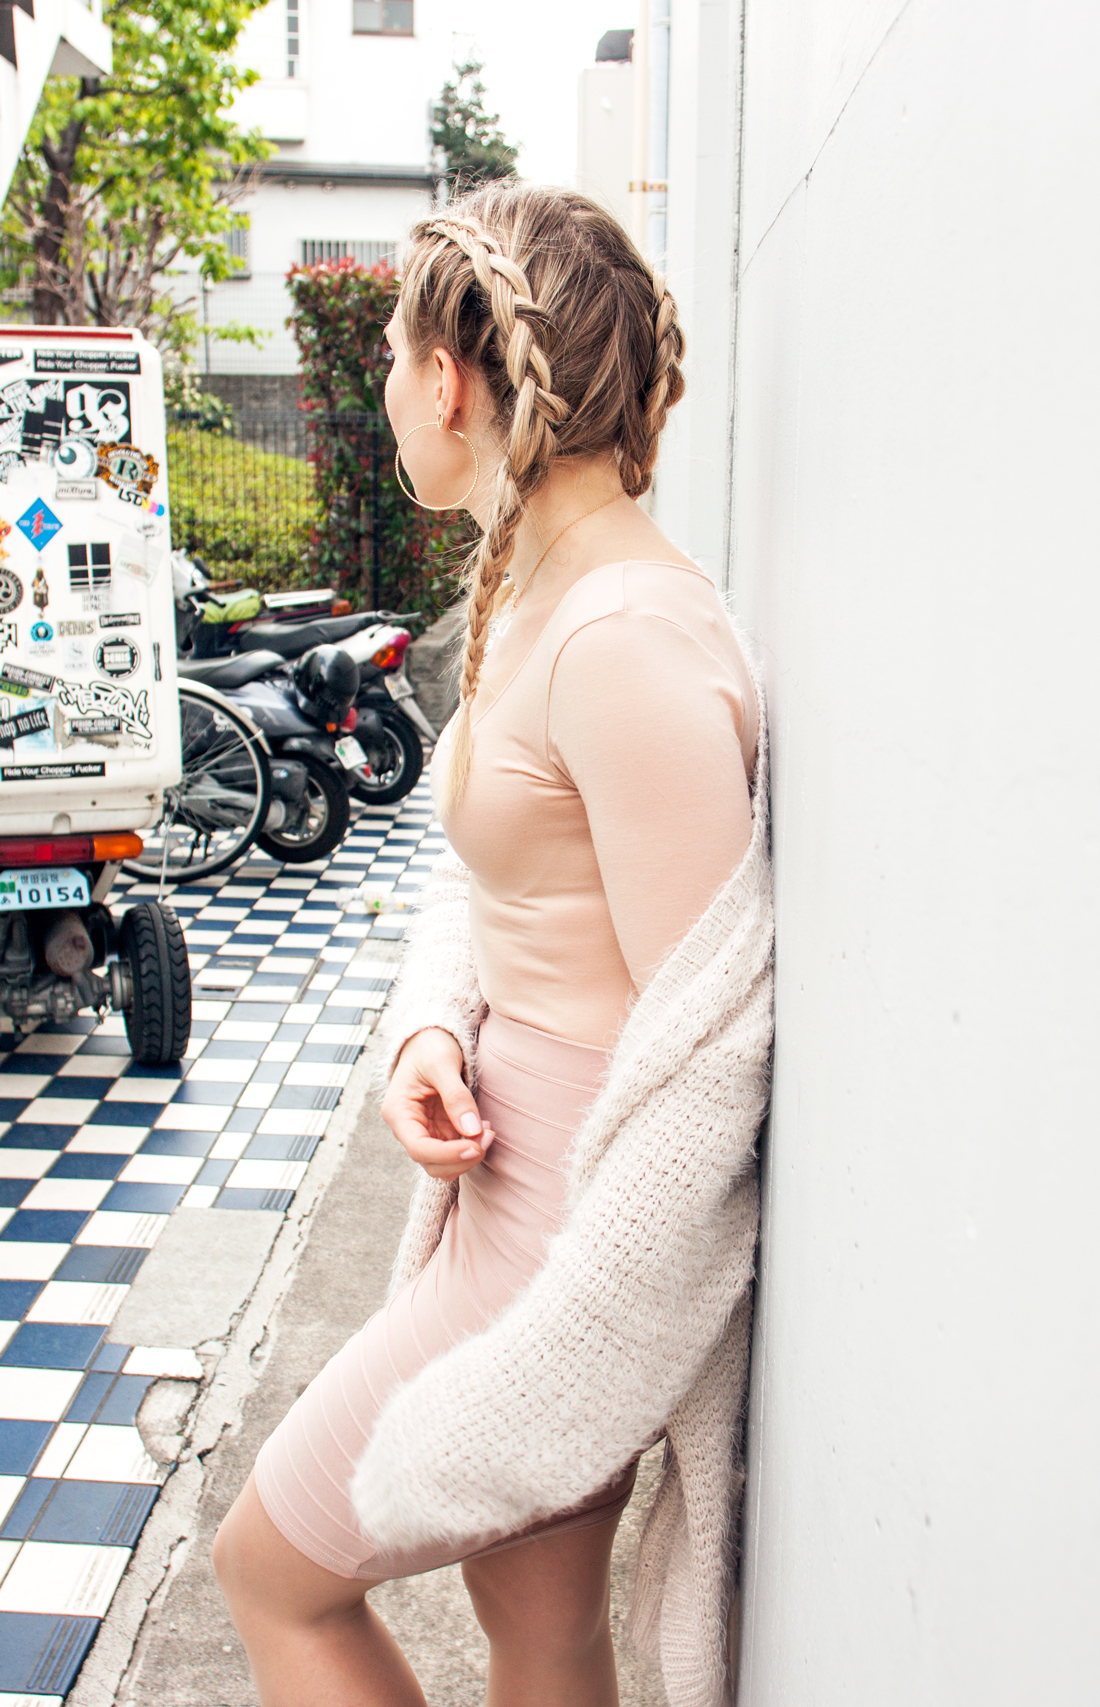 daikanyama, daikanyama street, tokyo fashion, tokyo blog, tokyo fashion blog, tokyo sightseeing blog, nelly skirt, nude skirt, nude look, glitter sneakers, log road daikanyama, dutch braids, inverted braids,